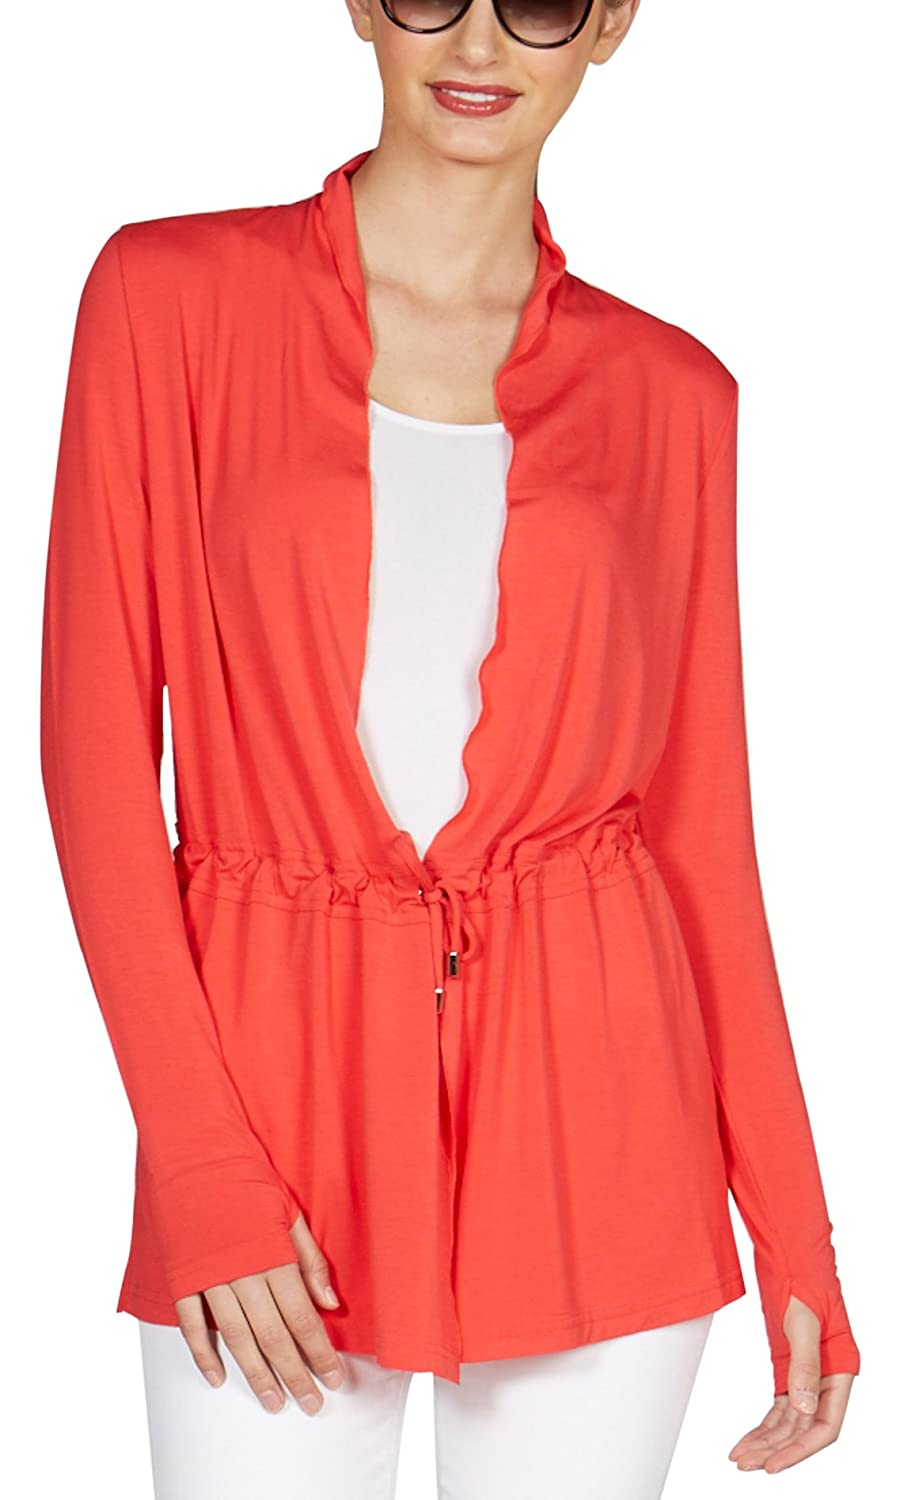 TALLA XL. Mott 50 mujeres de Christine Athletic jerséis, mujer, color Coral, tamaño XL